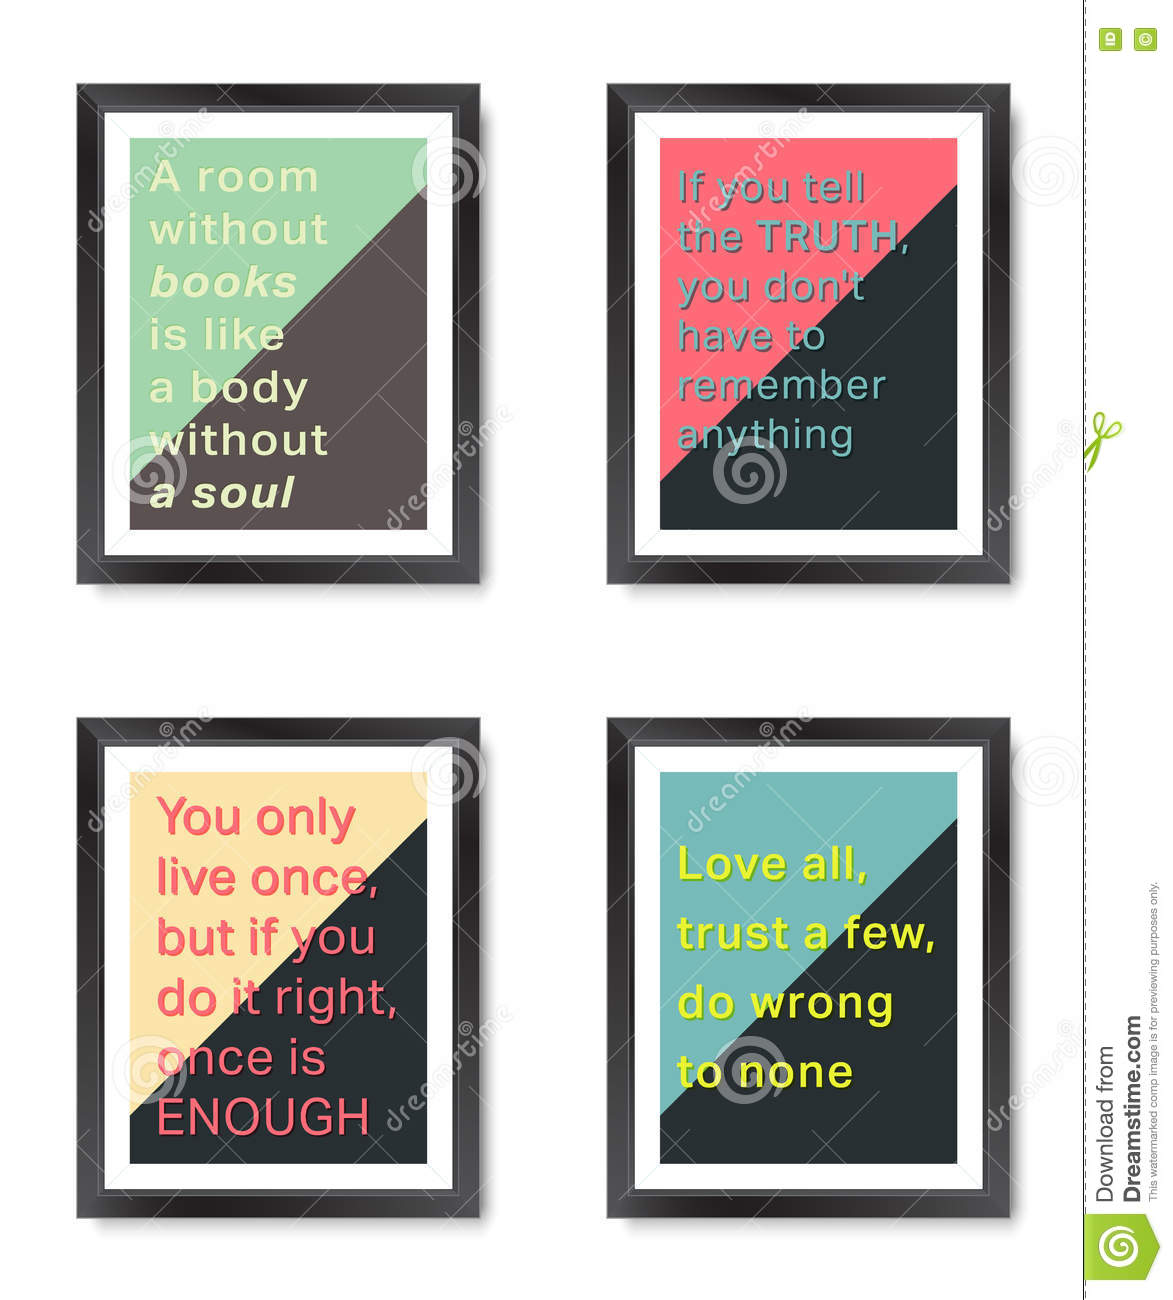 Quotes Motivation Frames Set Stock Vector - Illustration of phrases ...